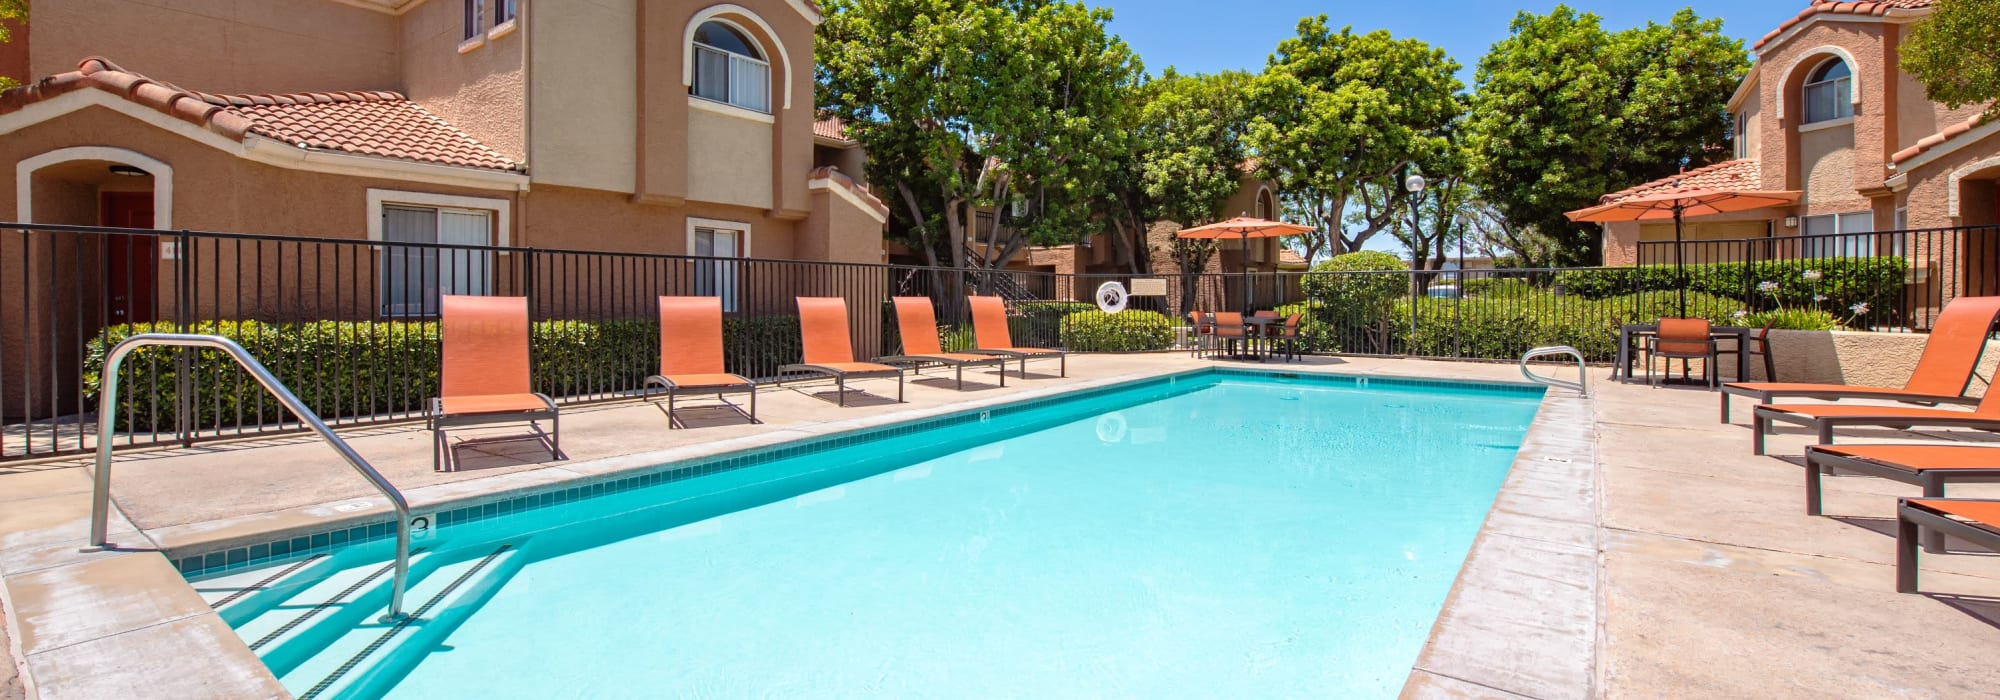 Virtual tours of Tuscany Village Apartments in Ontario, California